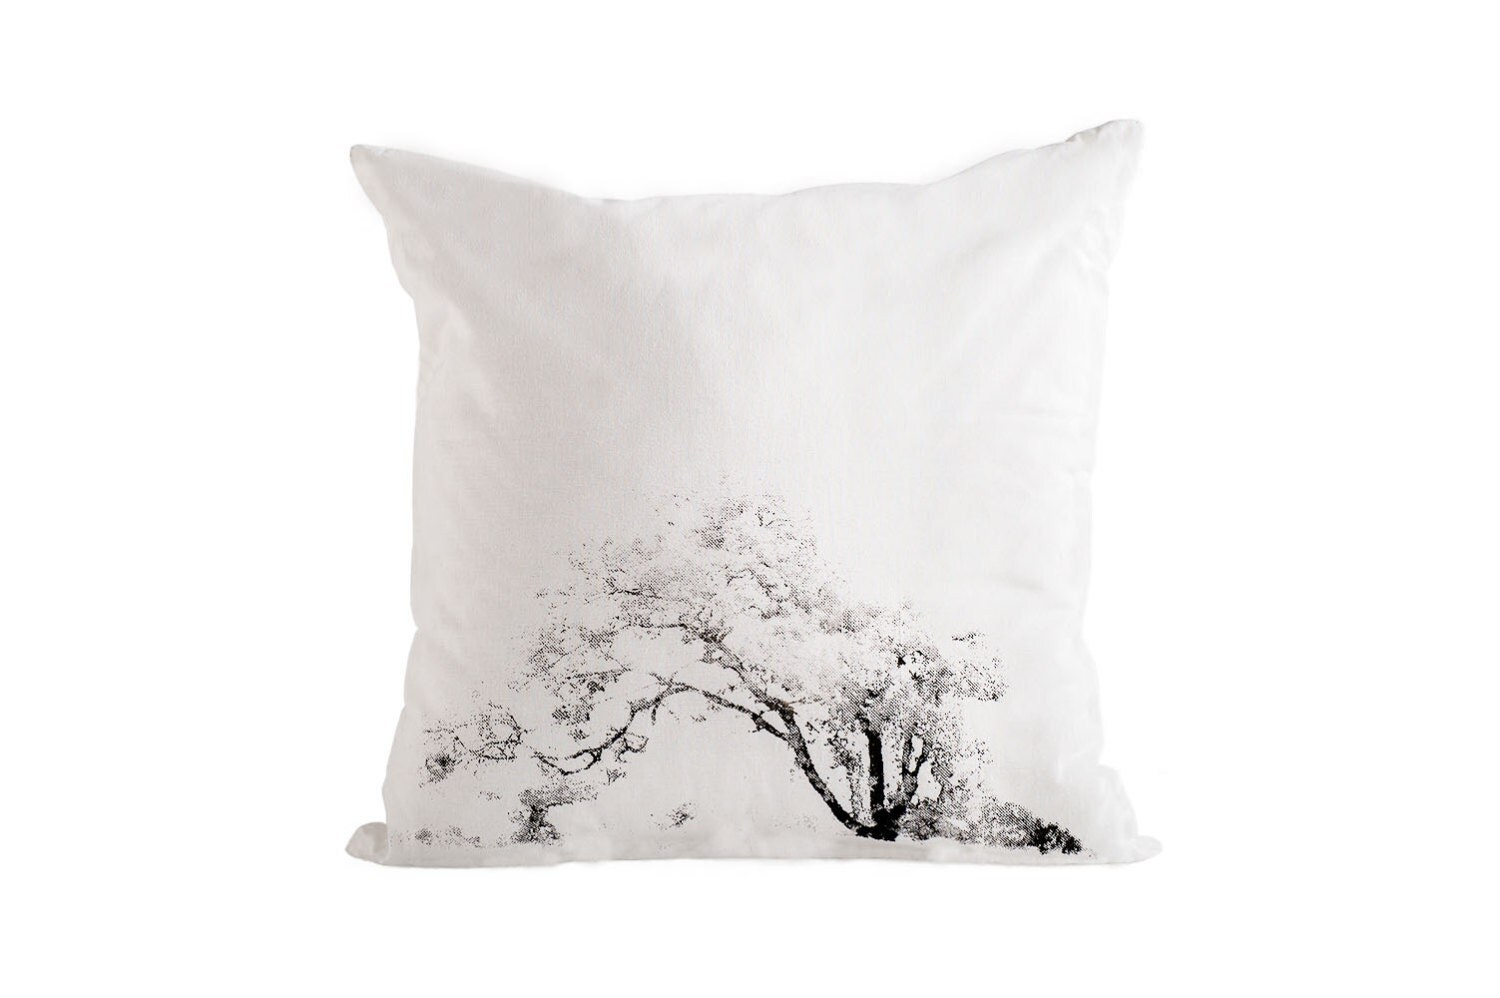 Tree Cushion cover, Black and White Pillow cover, Cotton cushion cover - Hamutelet